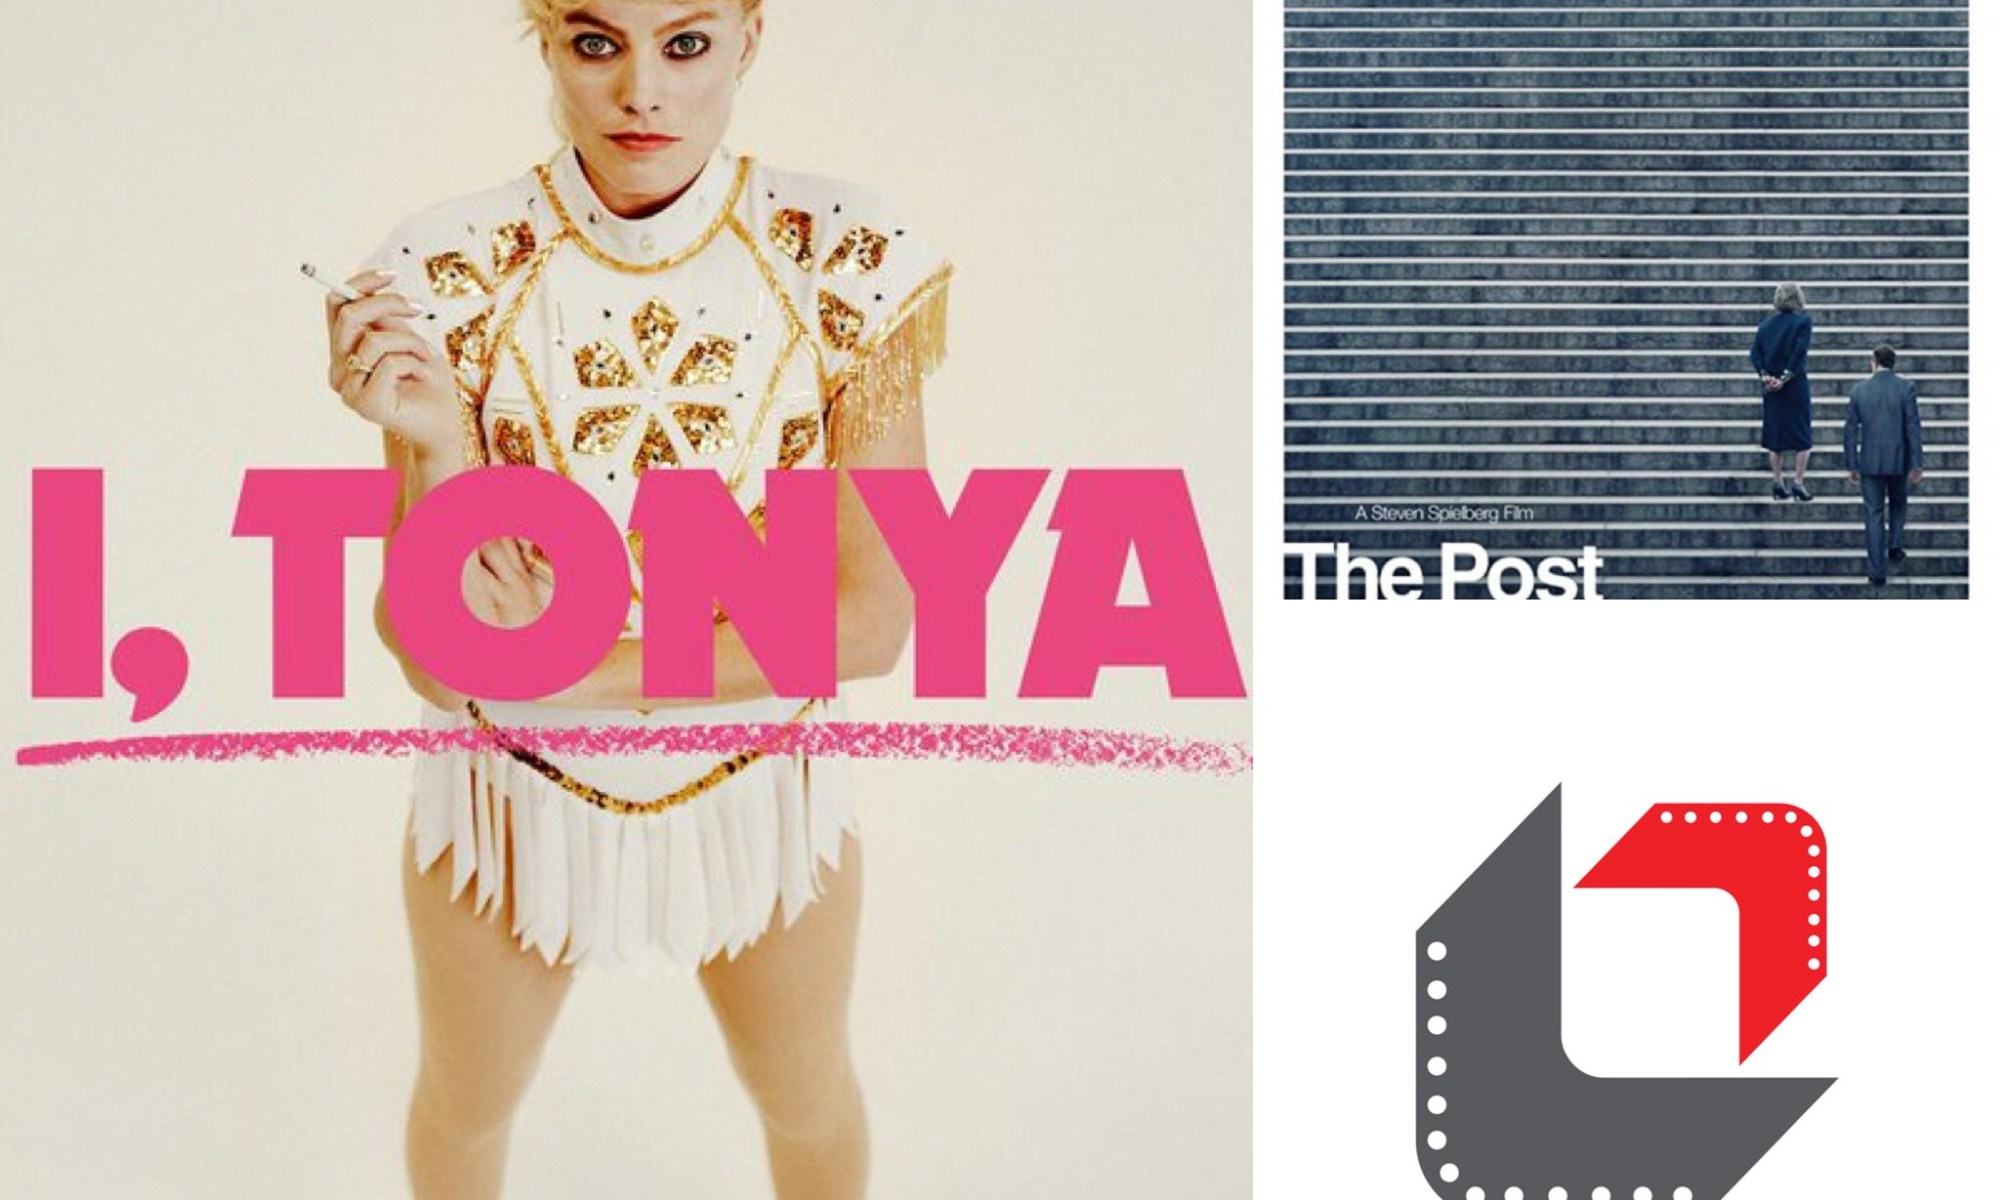 The post i, tonya the reel review podcast movie review